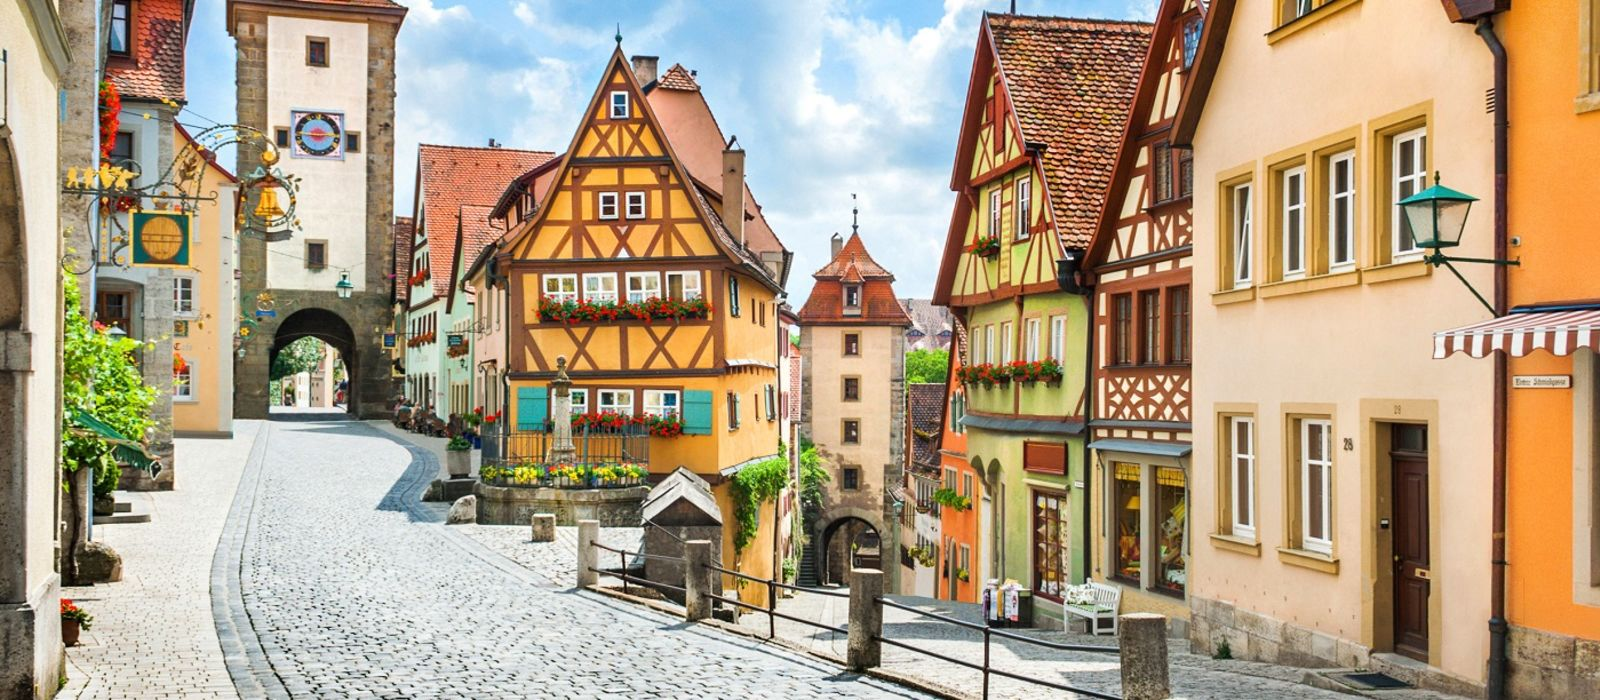 Enchanting Travels Germany Tours Beautiful postcard view of the famous historic town of Rothenburg ob der Tauber